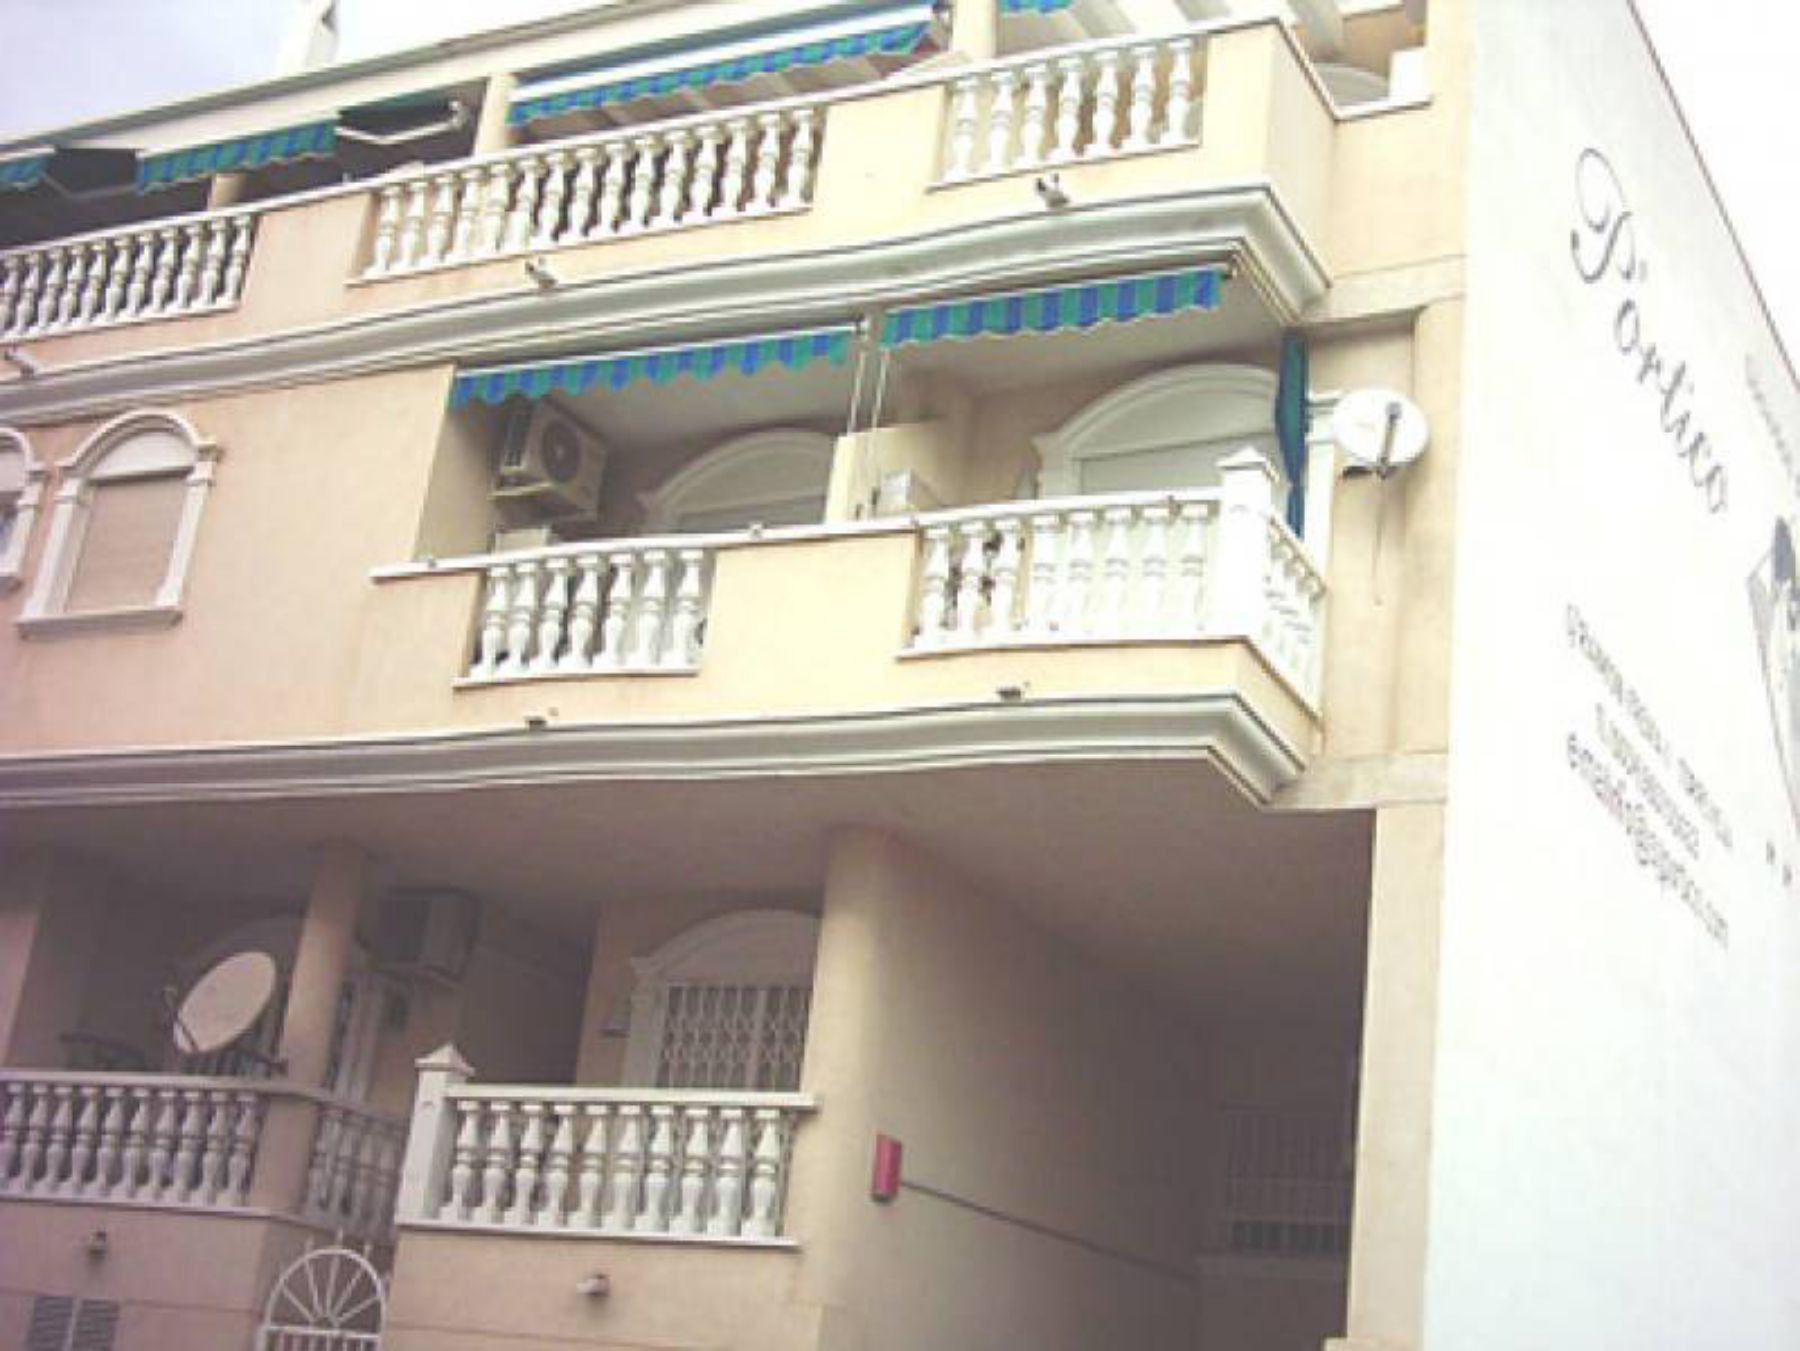 3 Bedrooms Apartment For Sale Just 600 Meters from El Cura Beach – Torrevieja